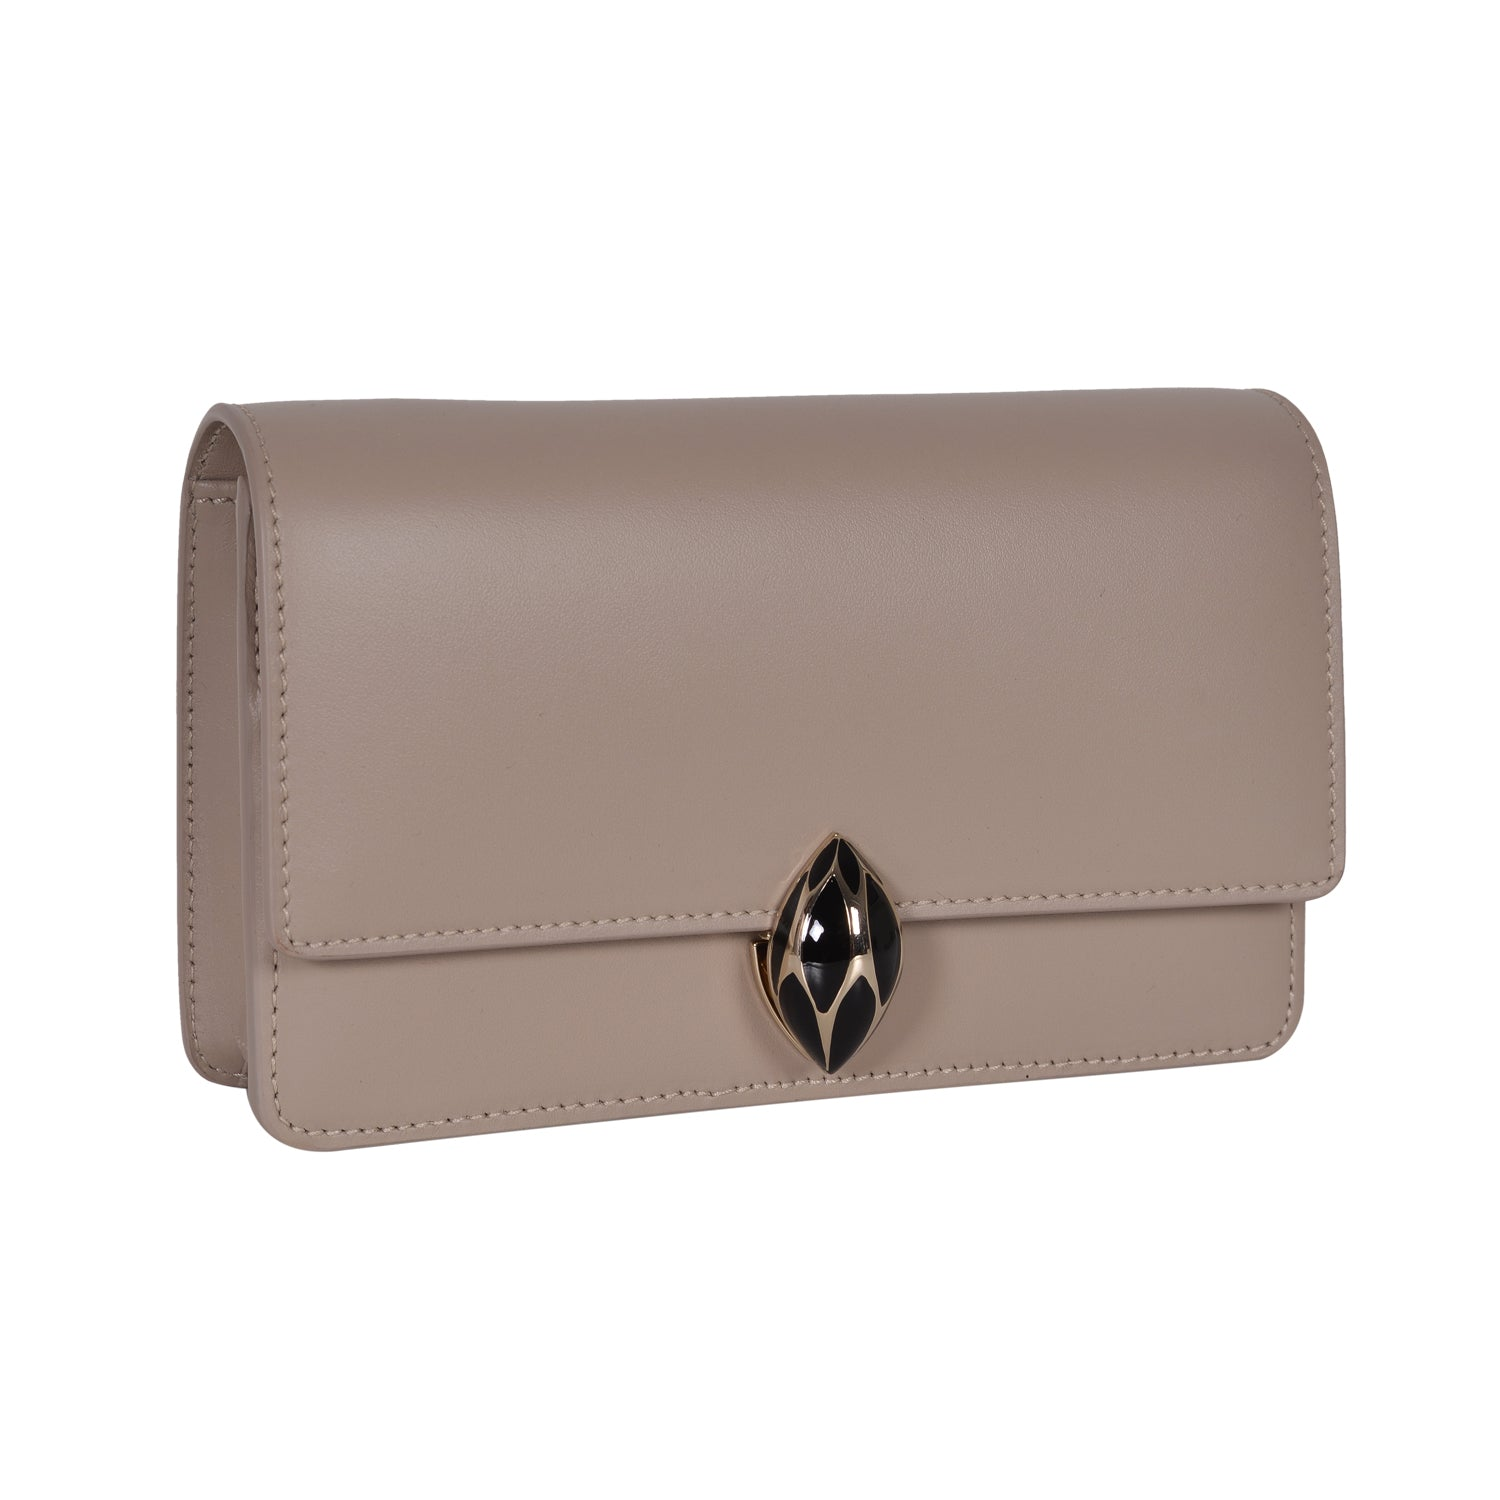 F.E.V  WOMEN'S TAUPE PLAIN CALF LEATHER  ST. MORTIZ CLUTCH